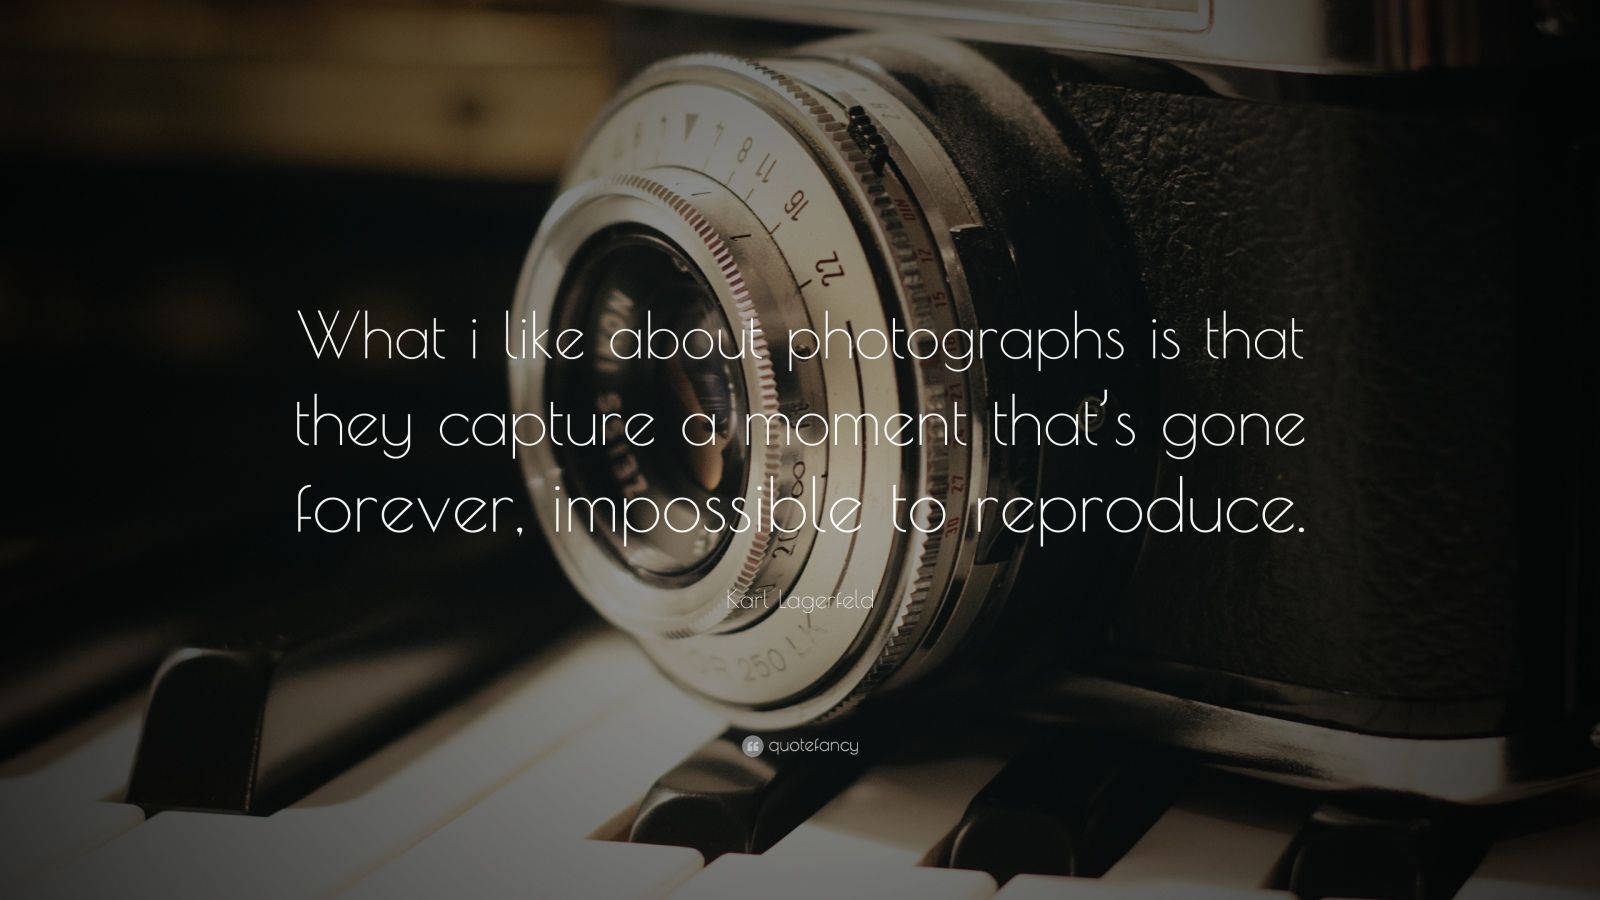 "Photography Quotes: ""What i like about photographs is that they capture a moment that's gone forever, impossible to reproduce."" — Karl Lagerfeld"